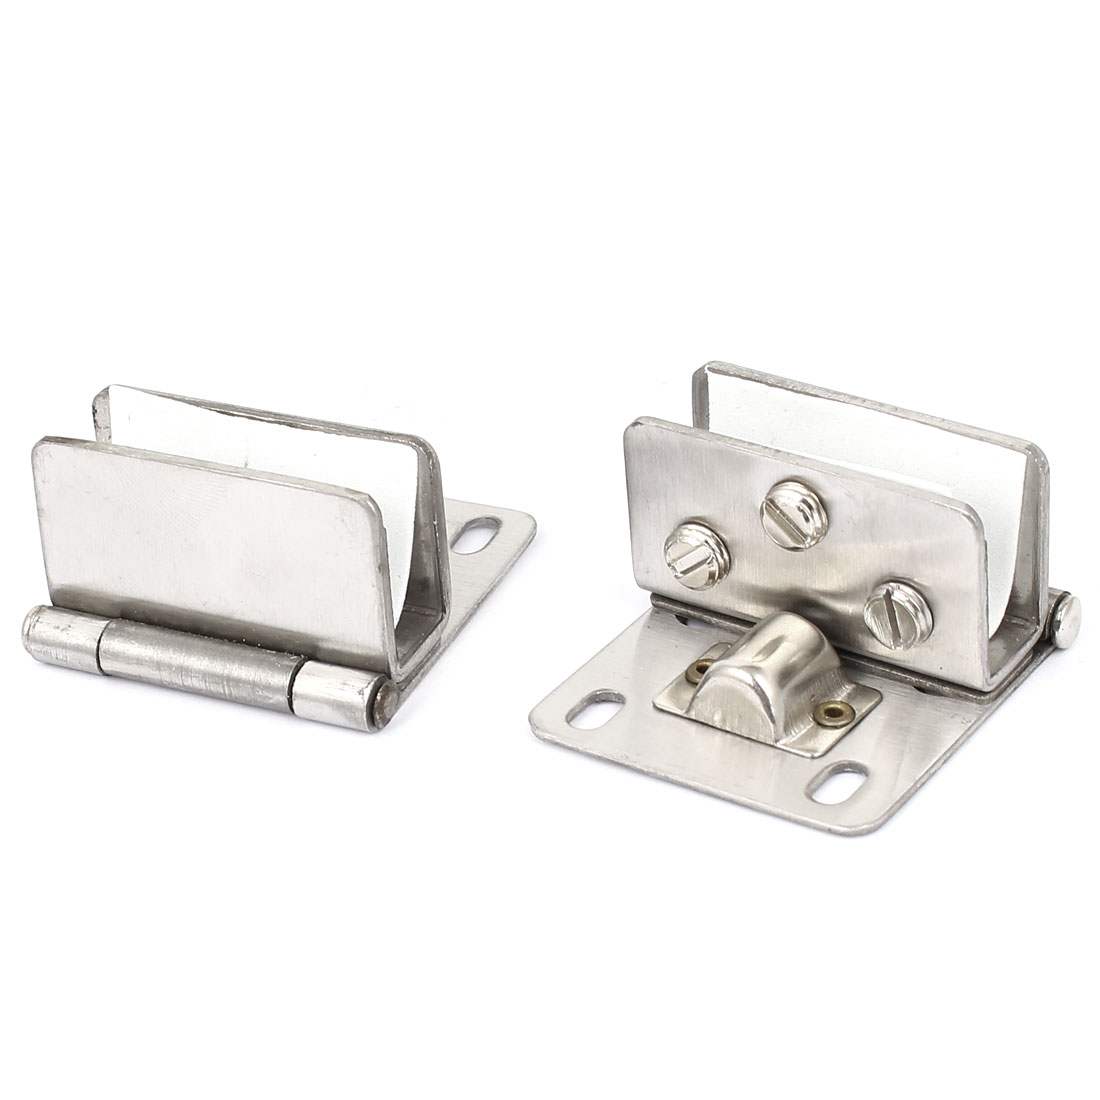 Wall Mount Adjustable Square Shelf Glass Door Clip Clamp Silver Tone 2pcs